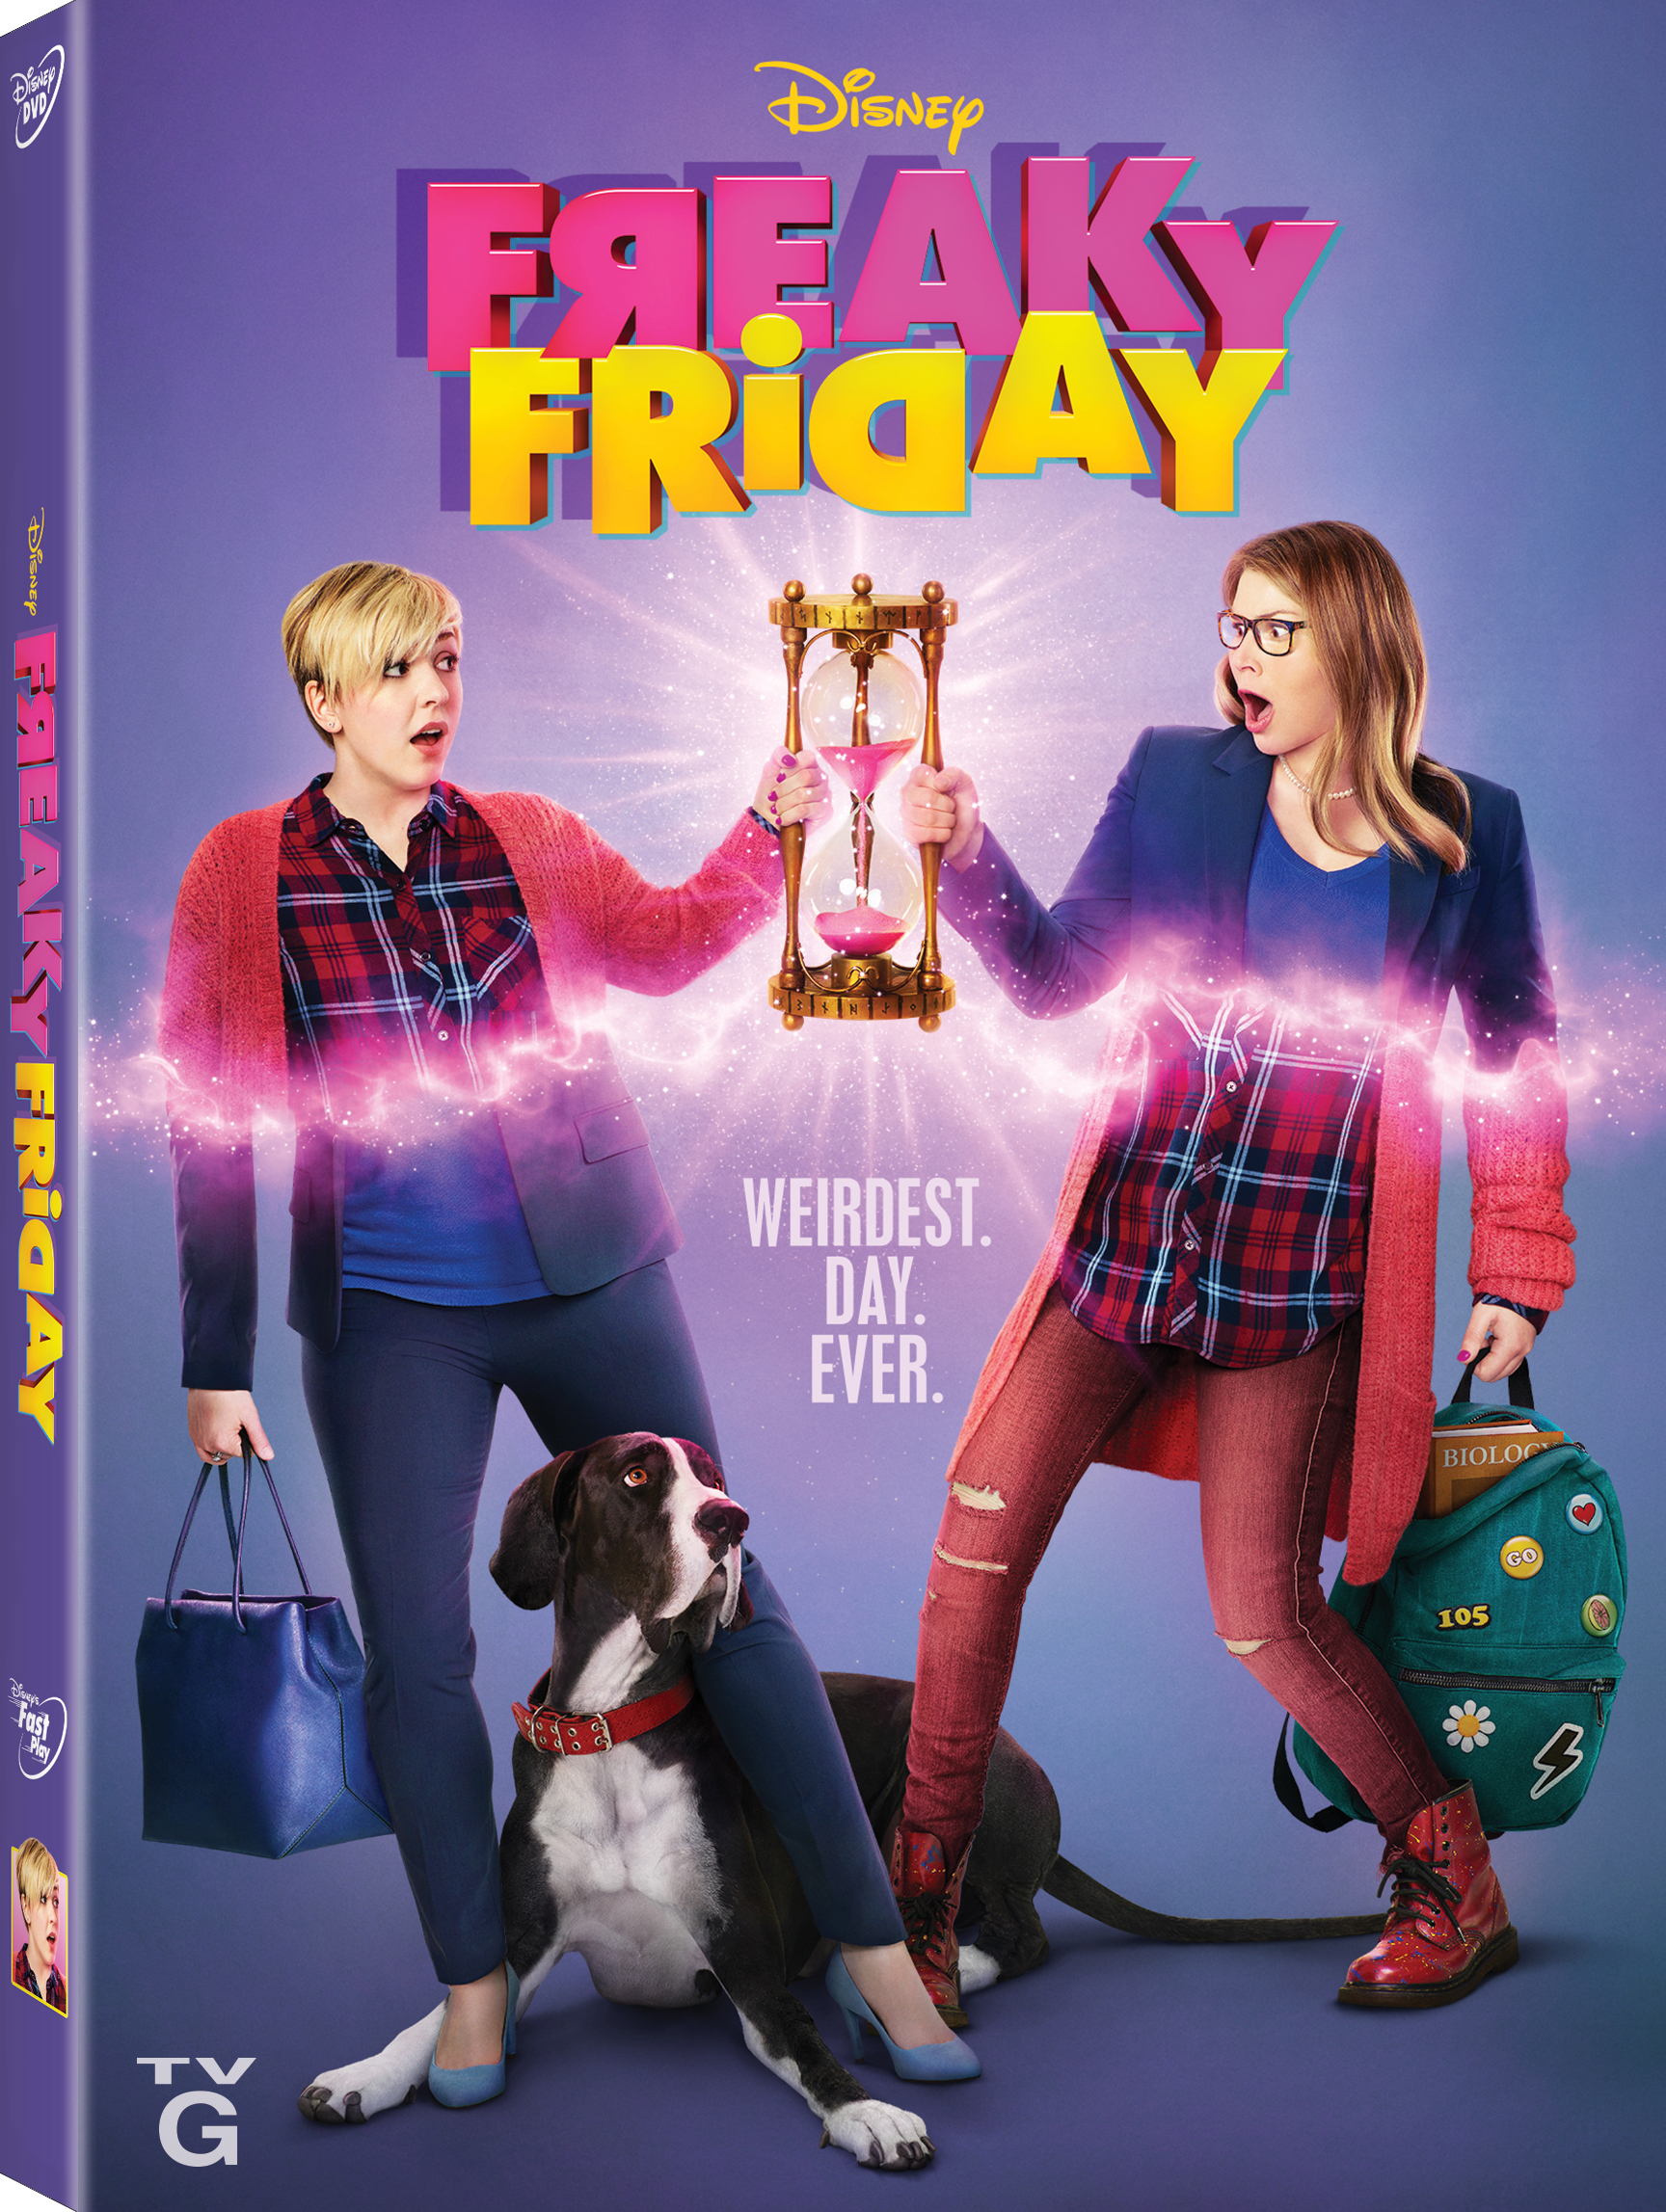 Freaky Friday: A New Musical on Disney DVD September 25th!